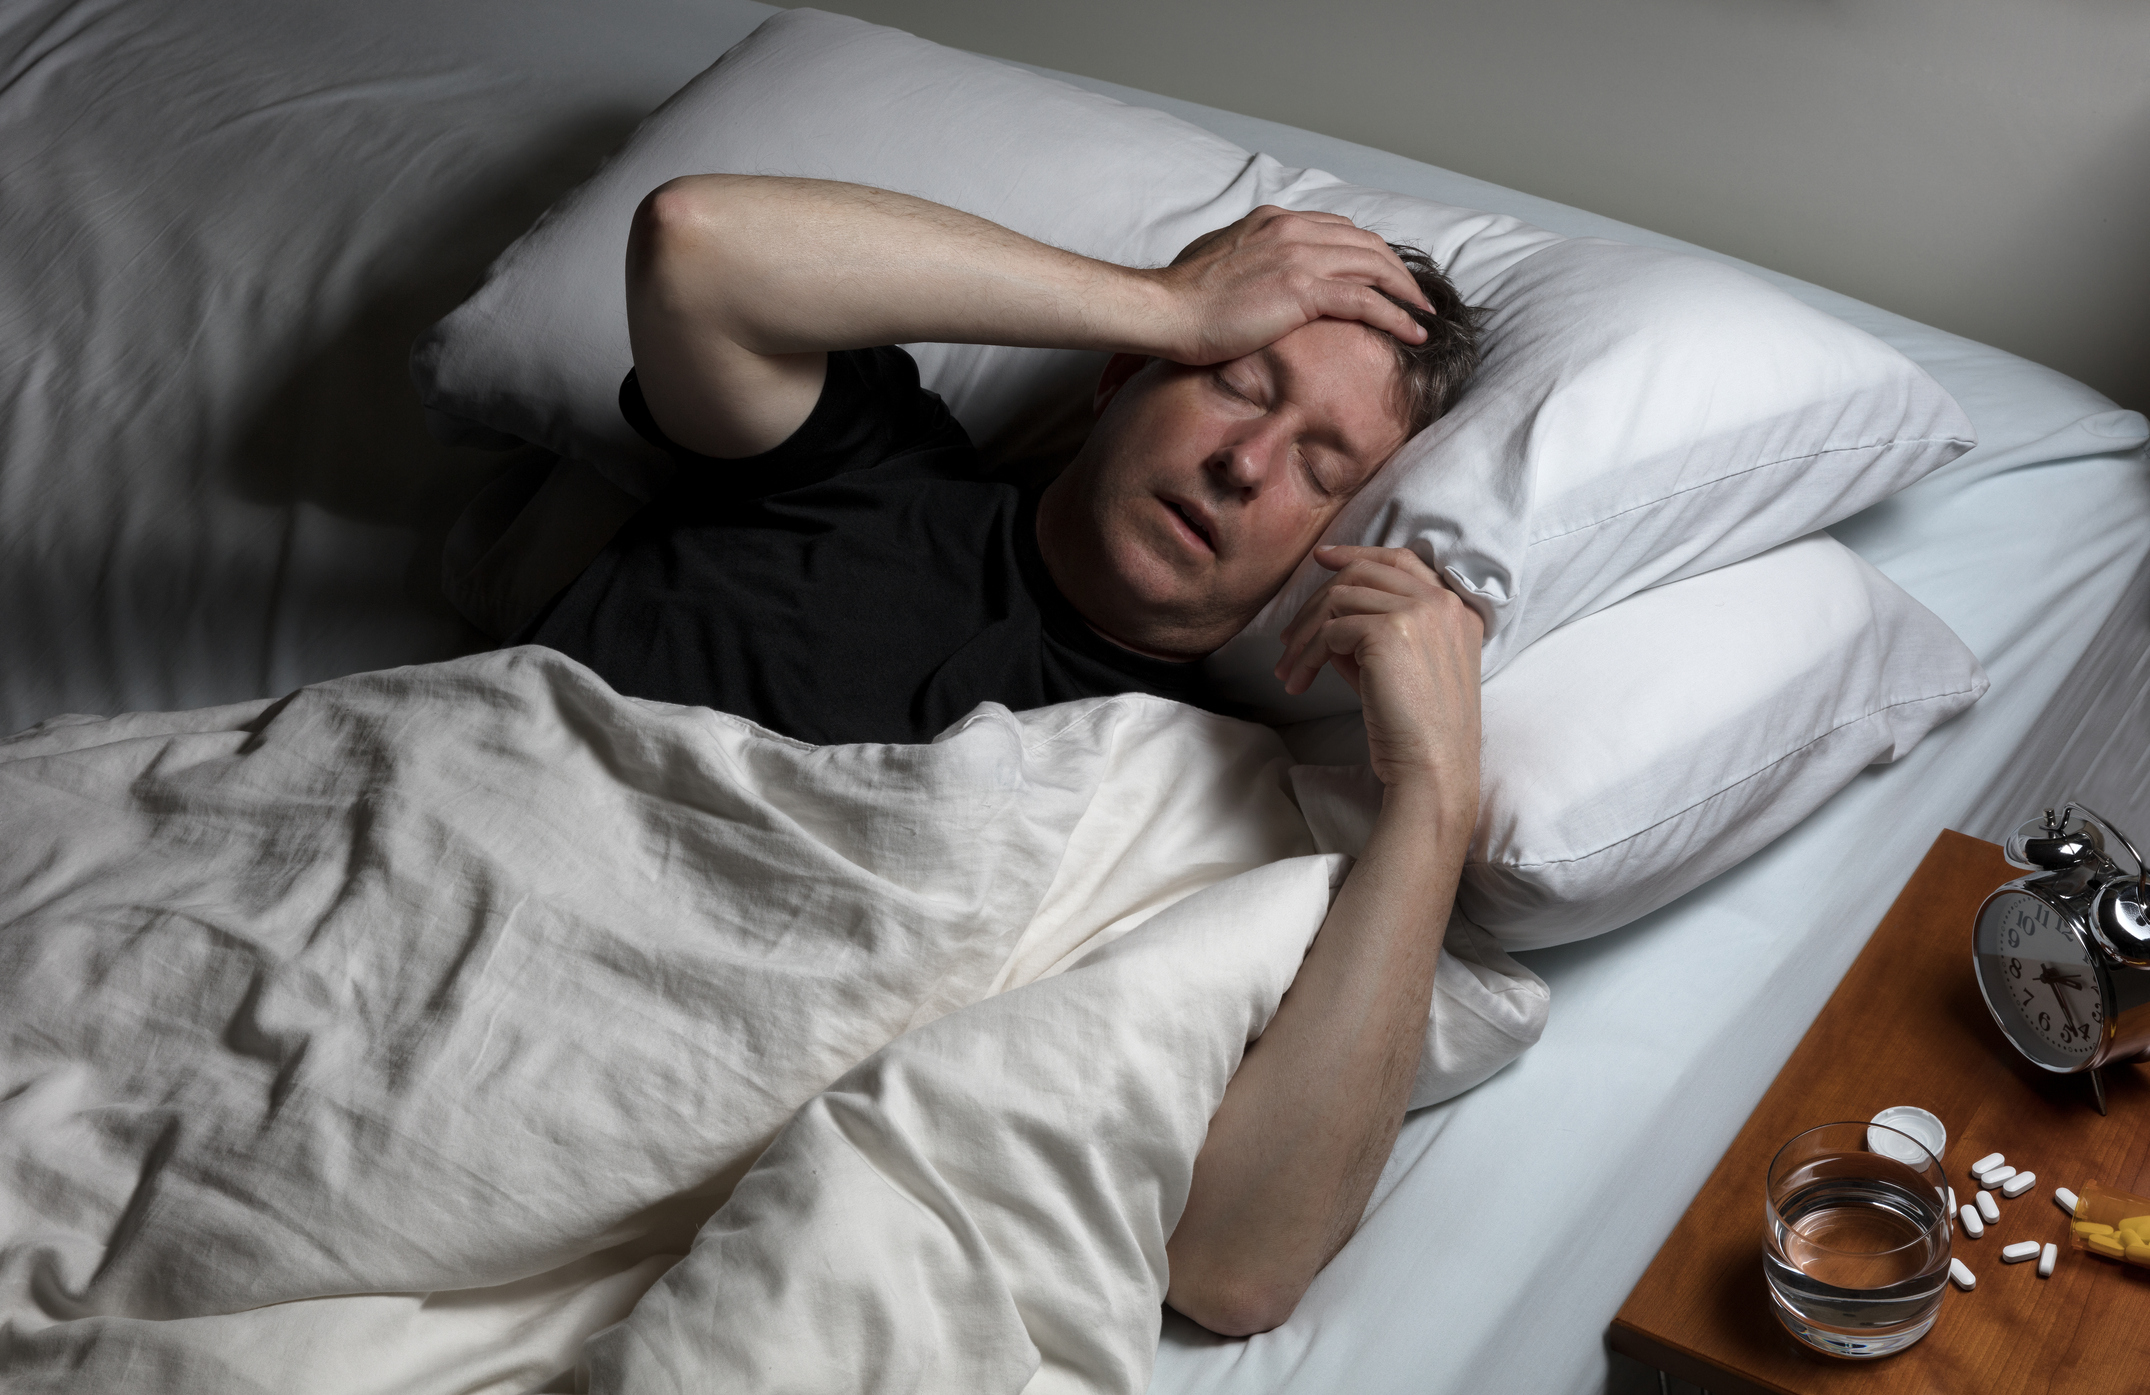 Why sleep apnea can set you up for a severe COVID-19 infection